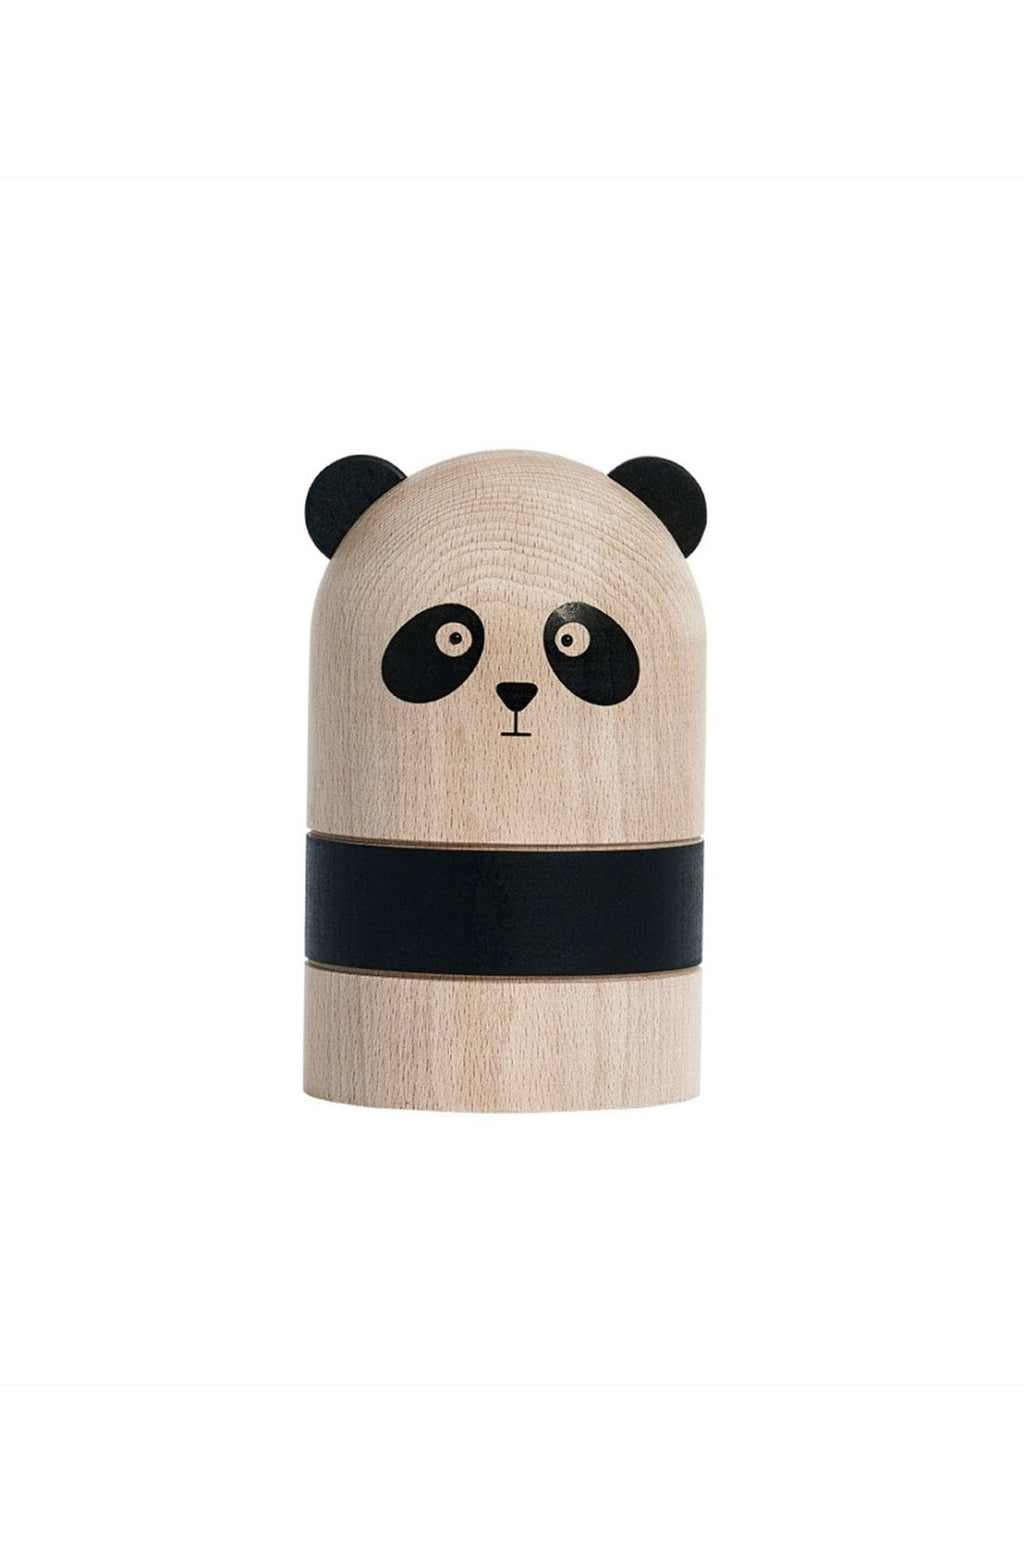 OYOY Panda Moneybank (PRE-ORDER MAY) - Hello Little Birdie